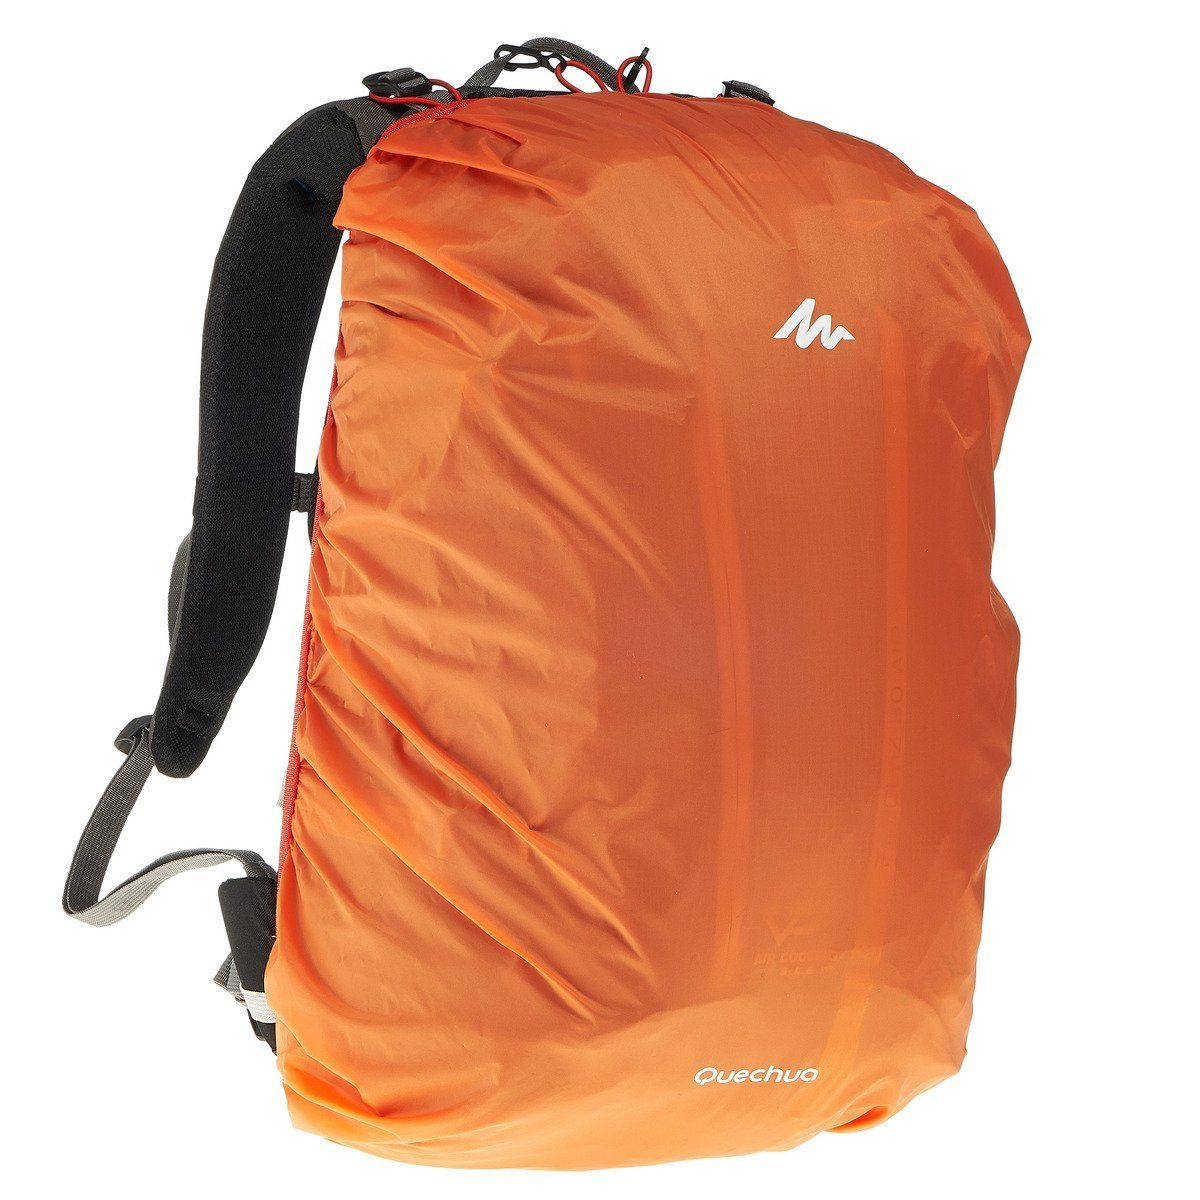 14832e21672c X-Sports Decathlon Quechua Backpack Rain Cover for Hiking Camping Traveling  *** Insider's special review you can't miss. Read more : Backpacking gear